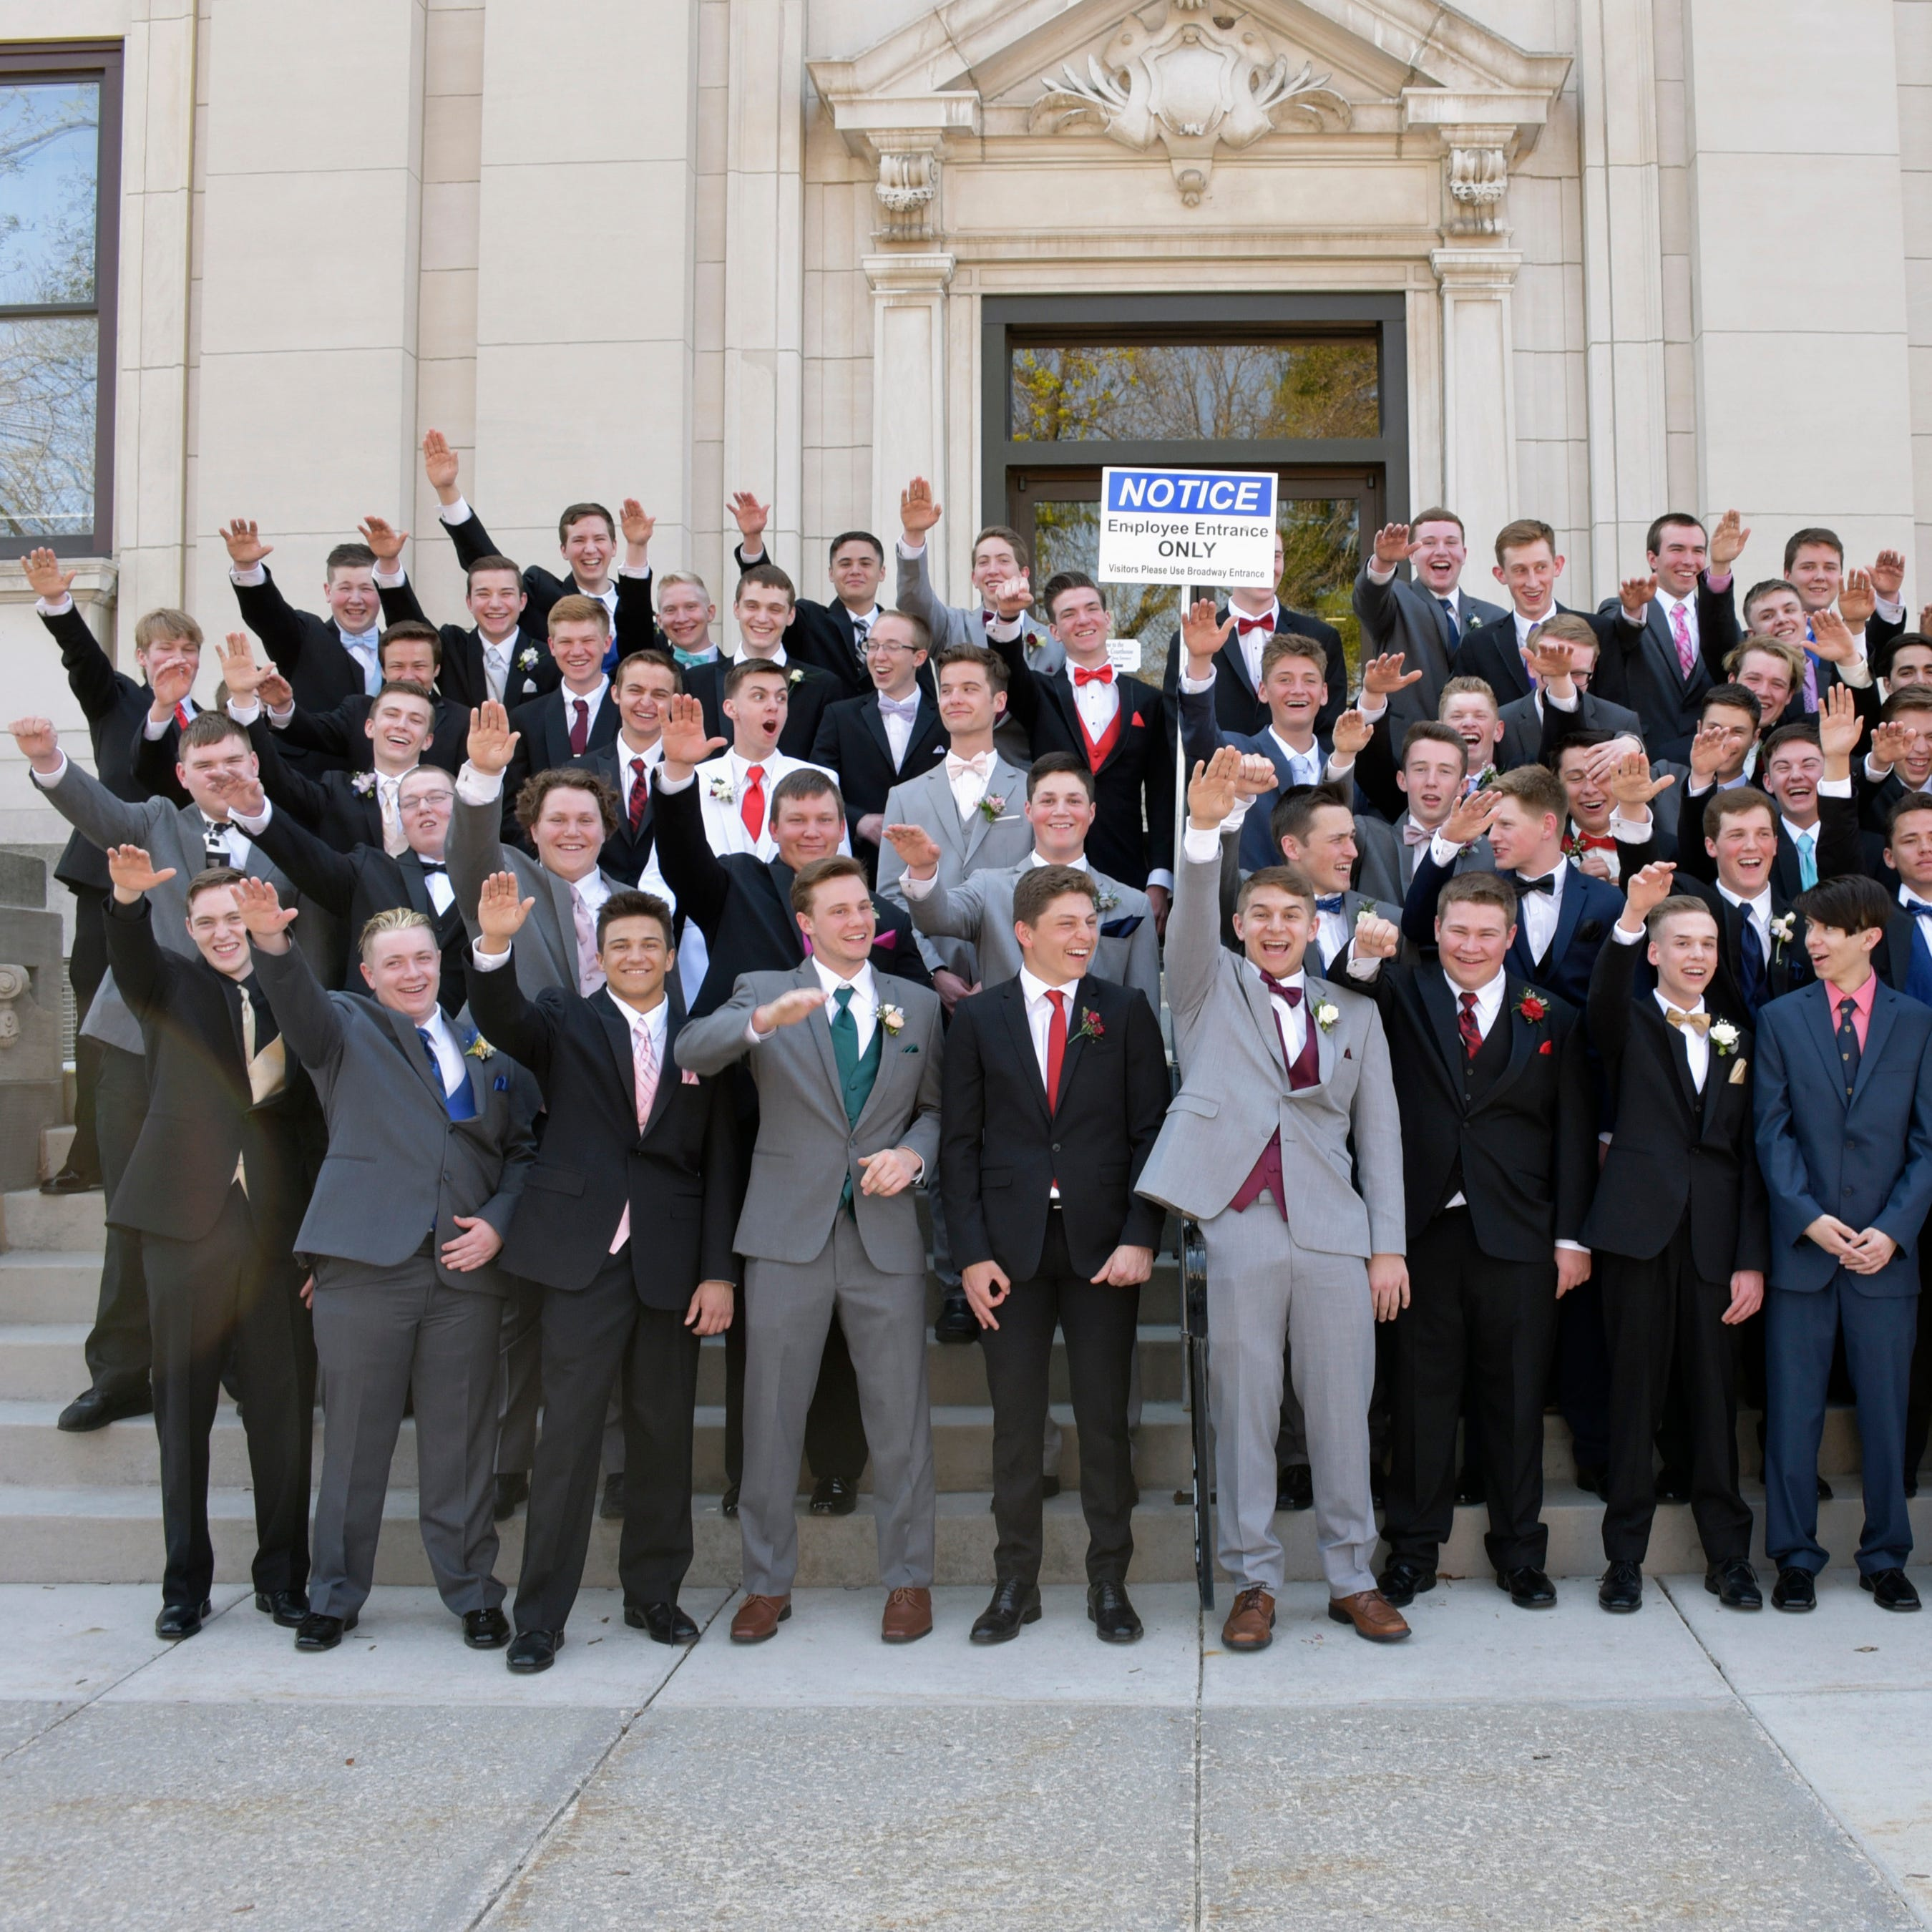 Wisconsin school Nazi salute photo: Free speech vs. punishment | Casey Hoff